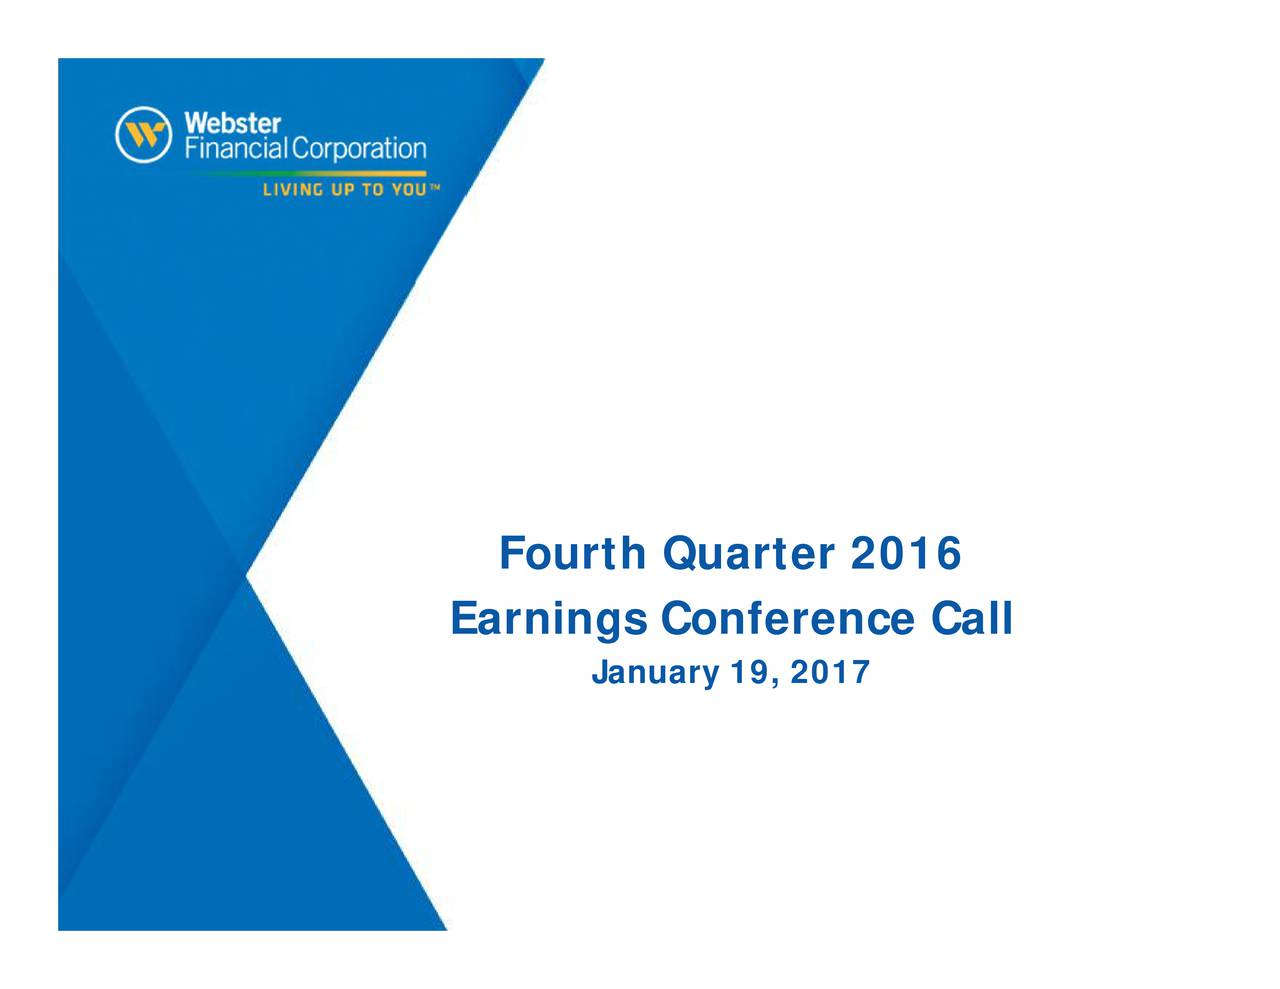 Earnings Conference Call January 19, 2017